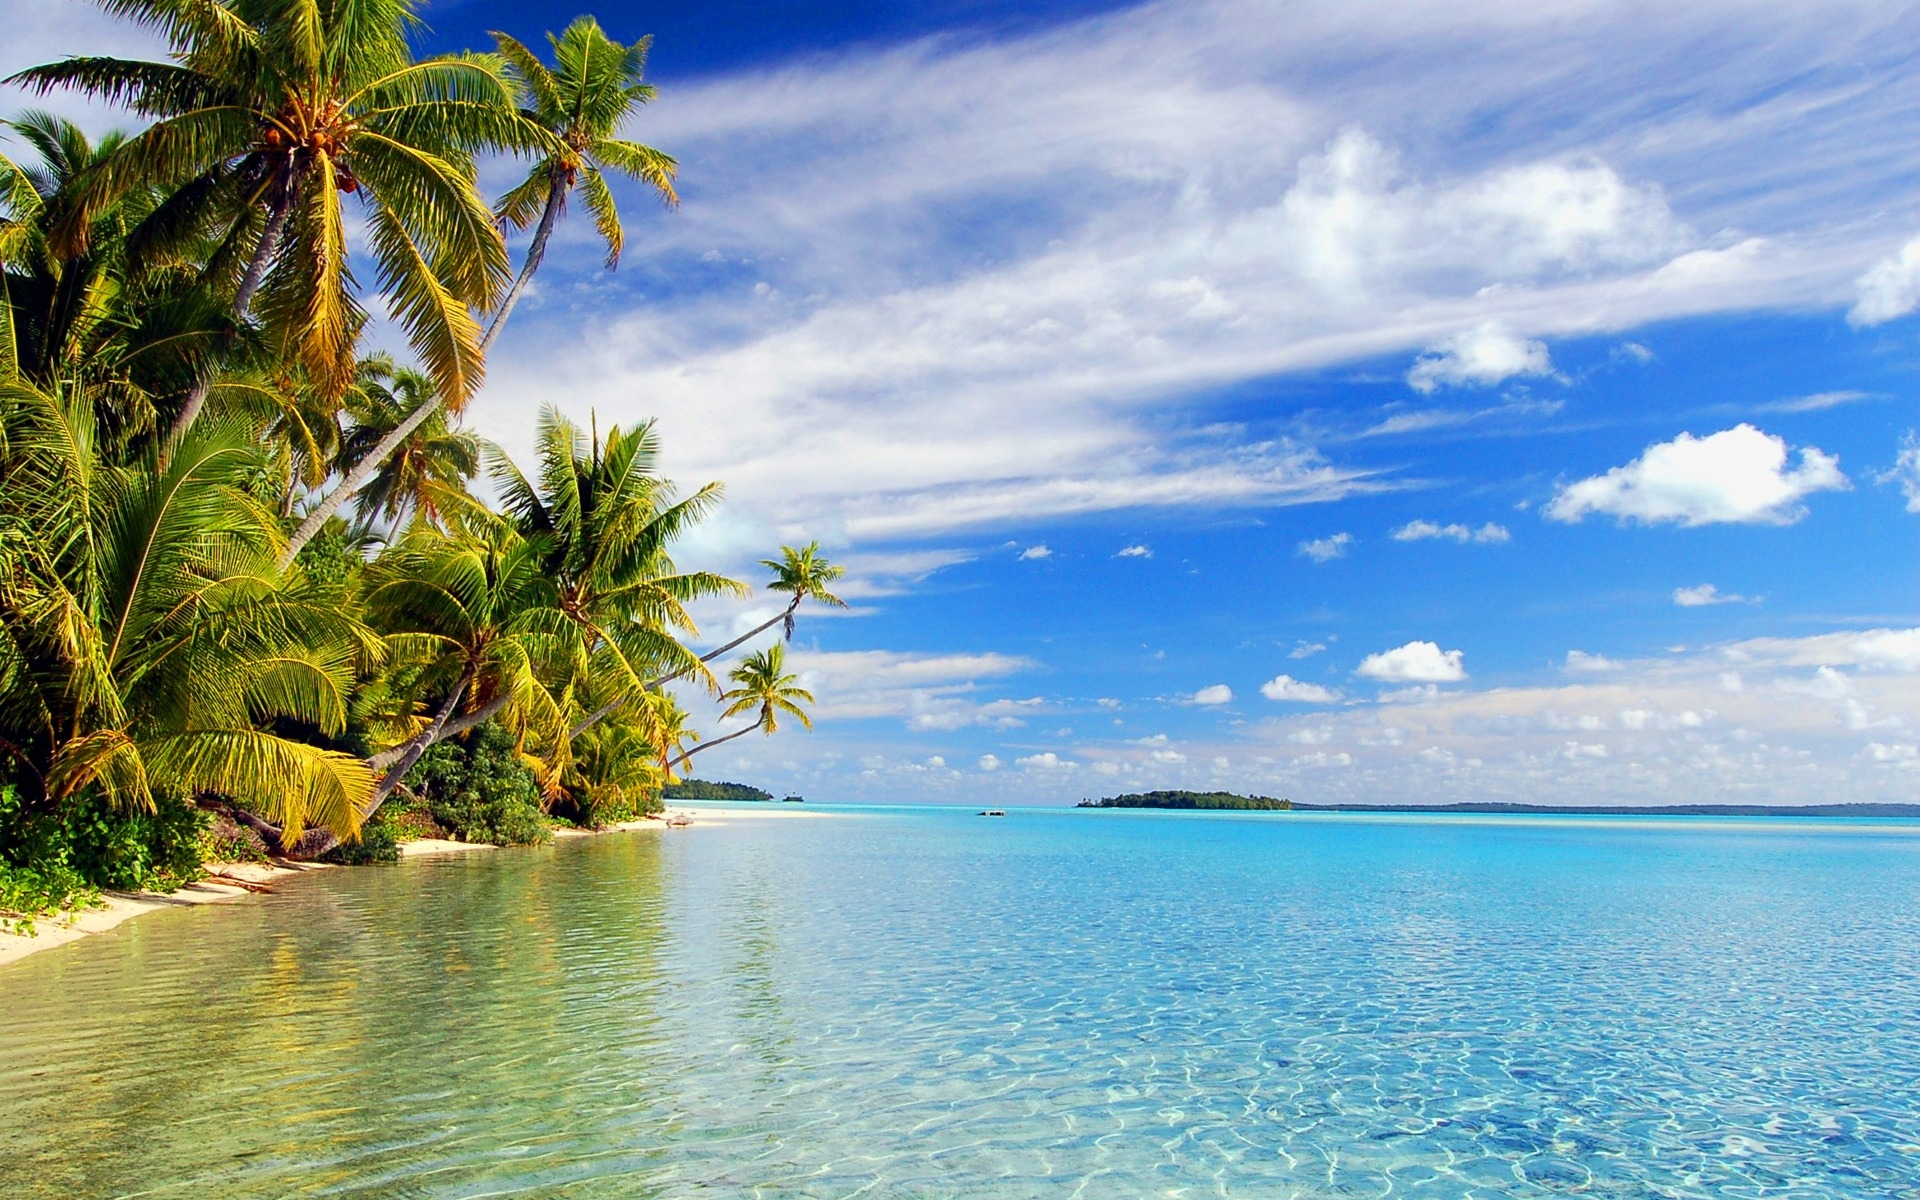 pictures hd download tropical beach wallpapers